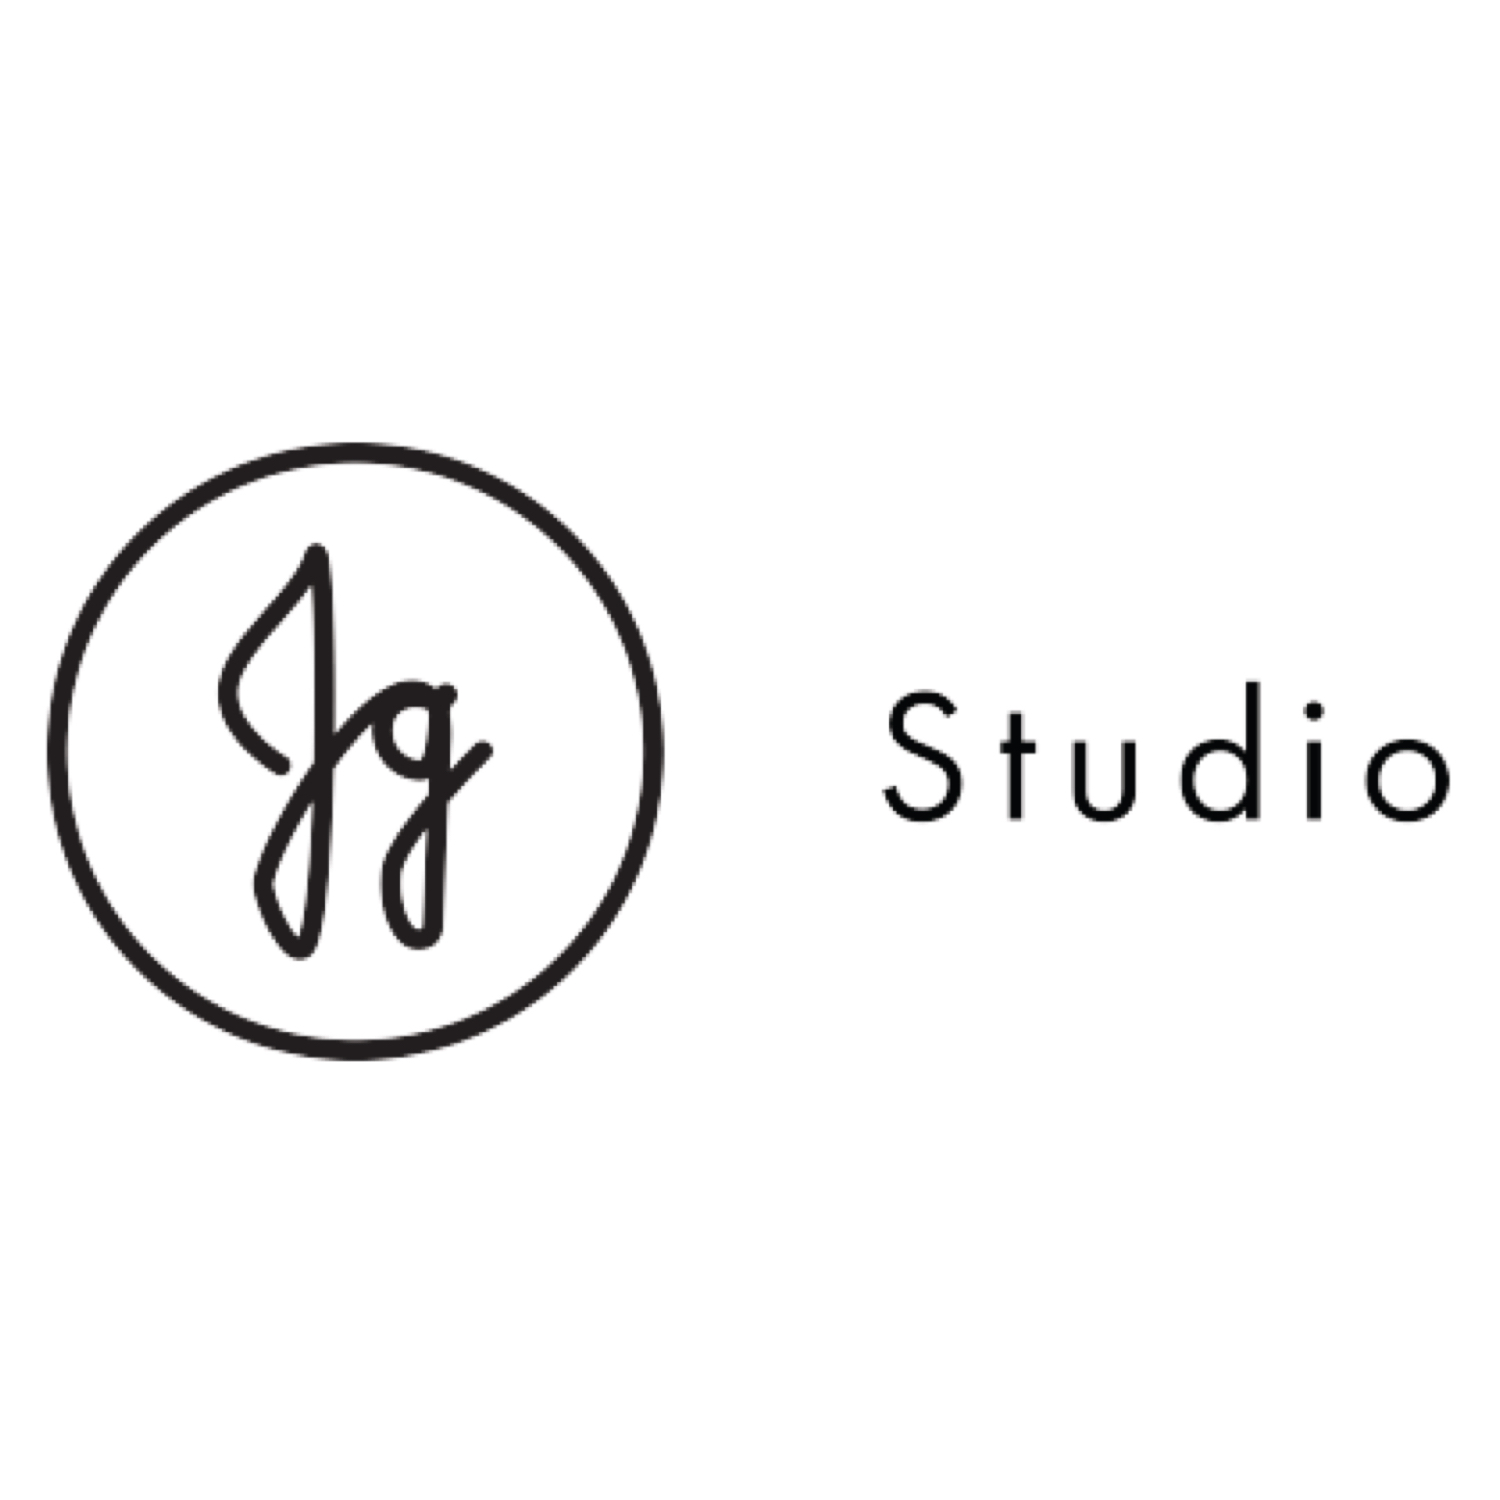 Jon Grogan Studio   Jon Grogan Studio is digital studio that carefully improves brands and their exposure to the world by taking a process-driven approach to addressing their visual identity, supporting design elements, and helping them to see results through their online marketing efforts. Our goal is to carefully address every area of a brand to assure that nothing is missing so that business owners can rest easy.